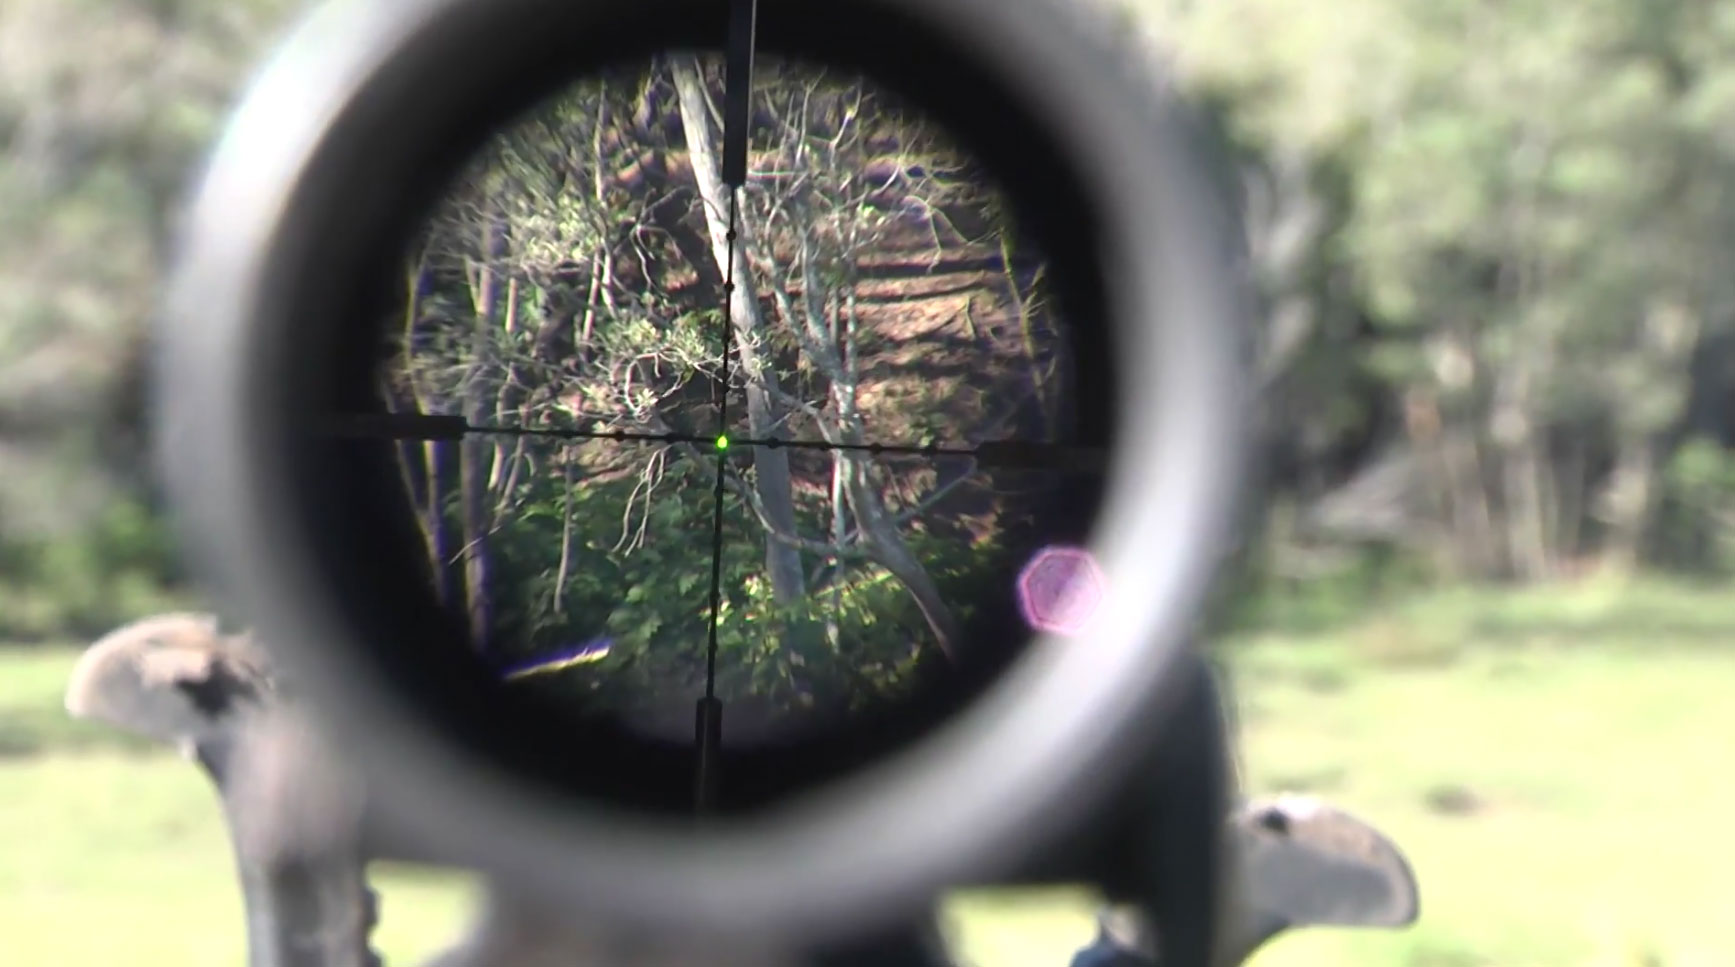 Scott Haugen—Ideal Reticle